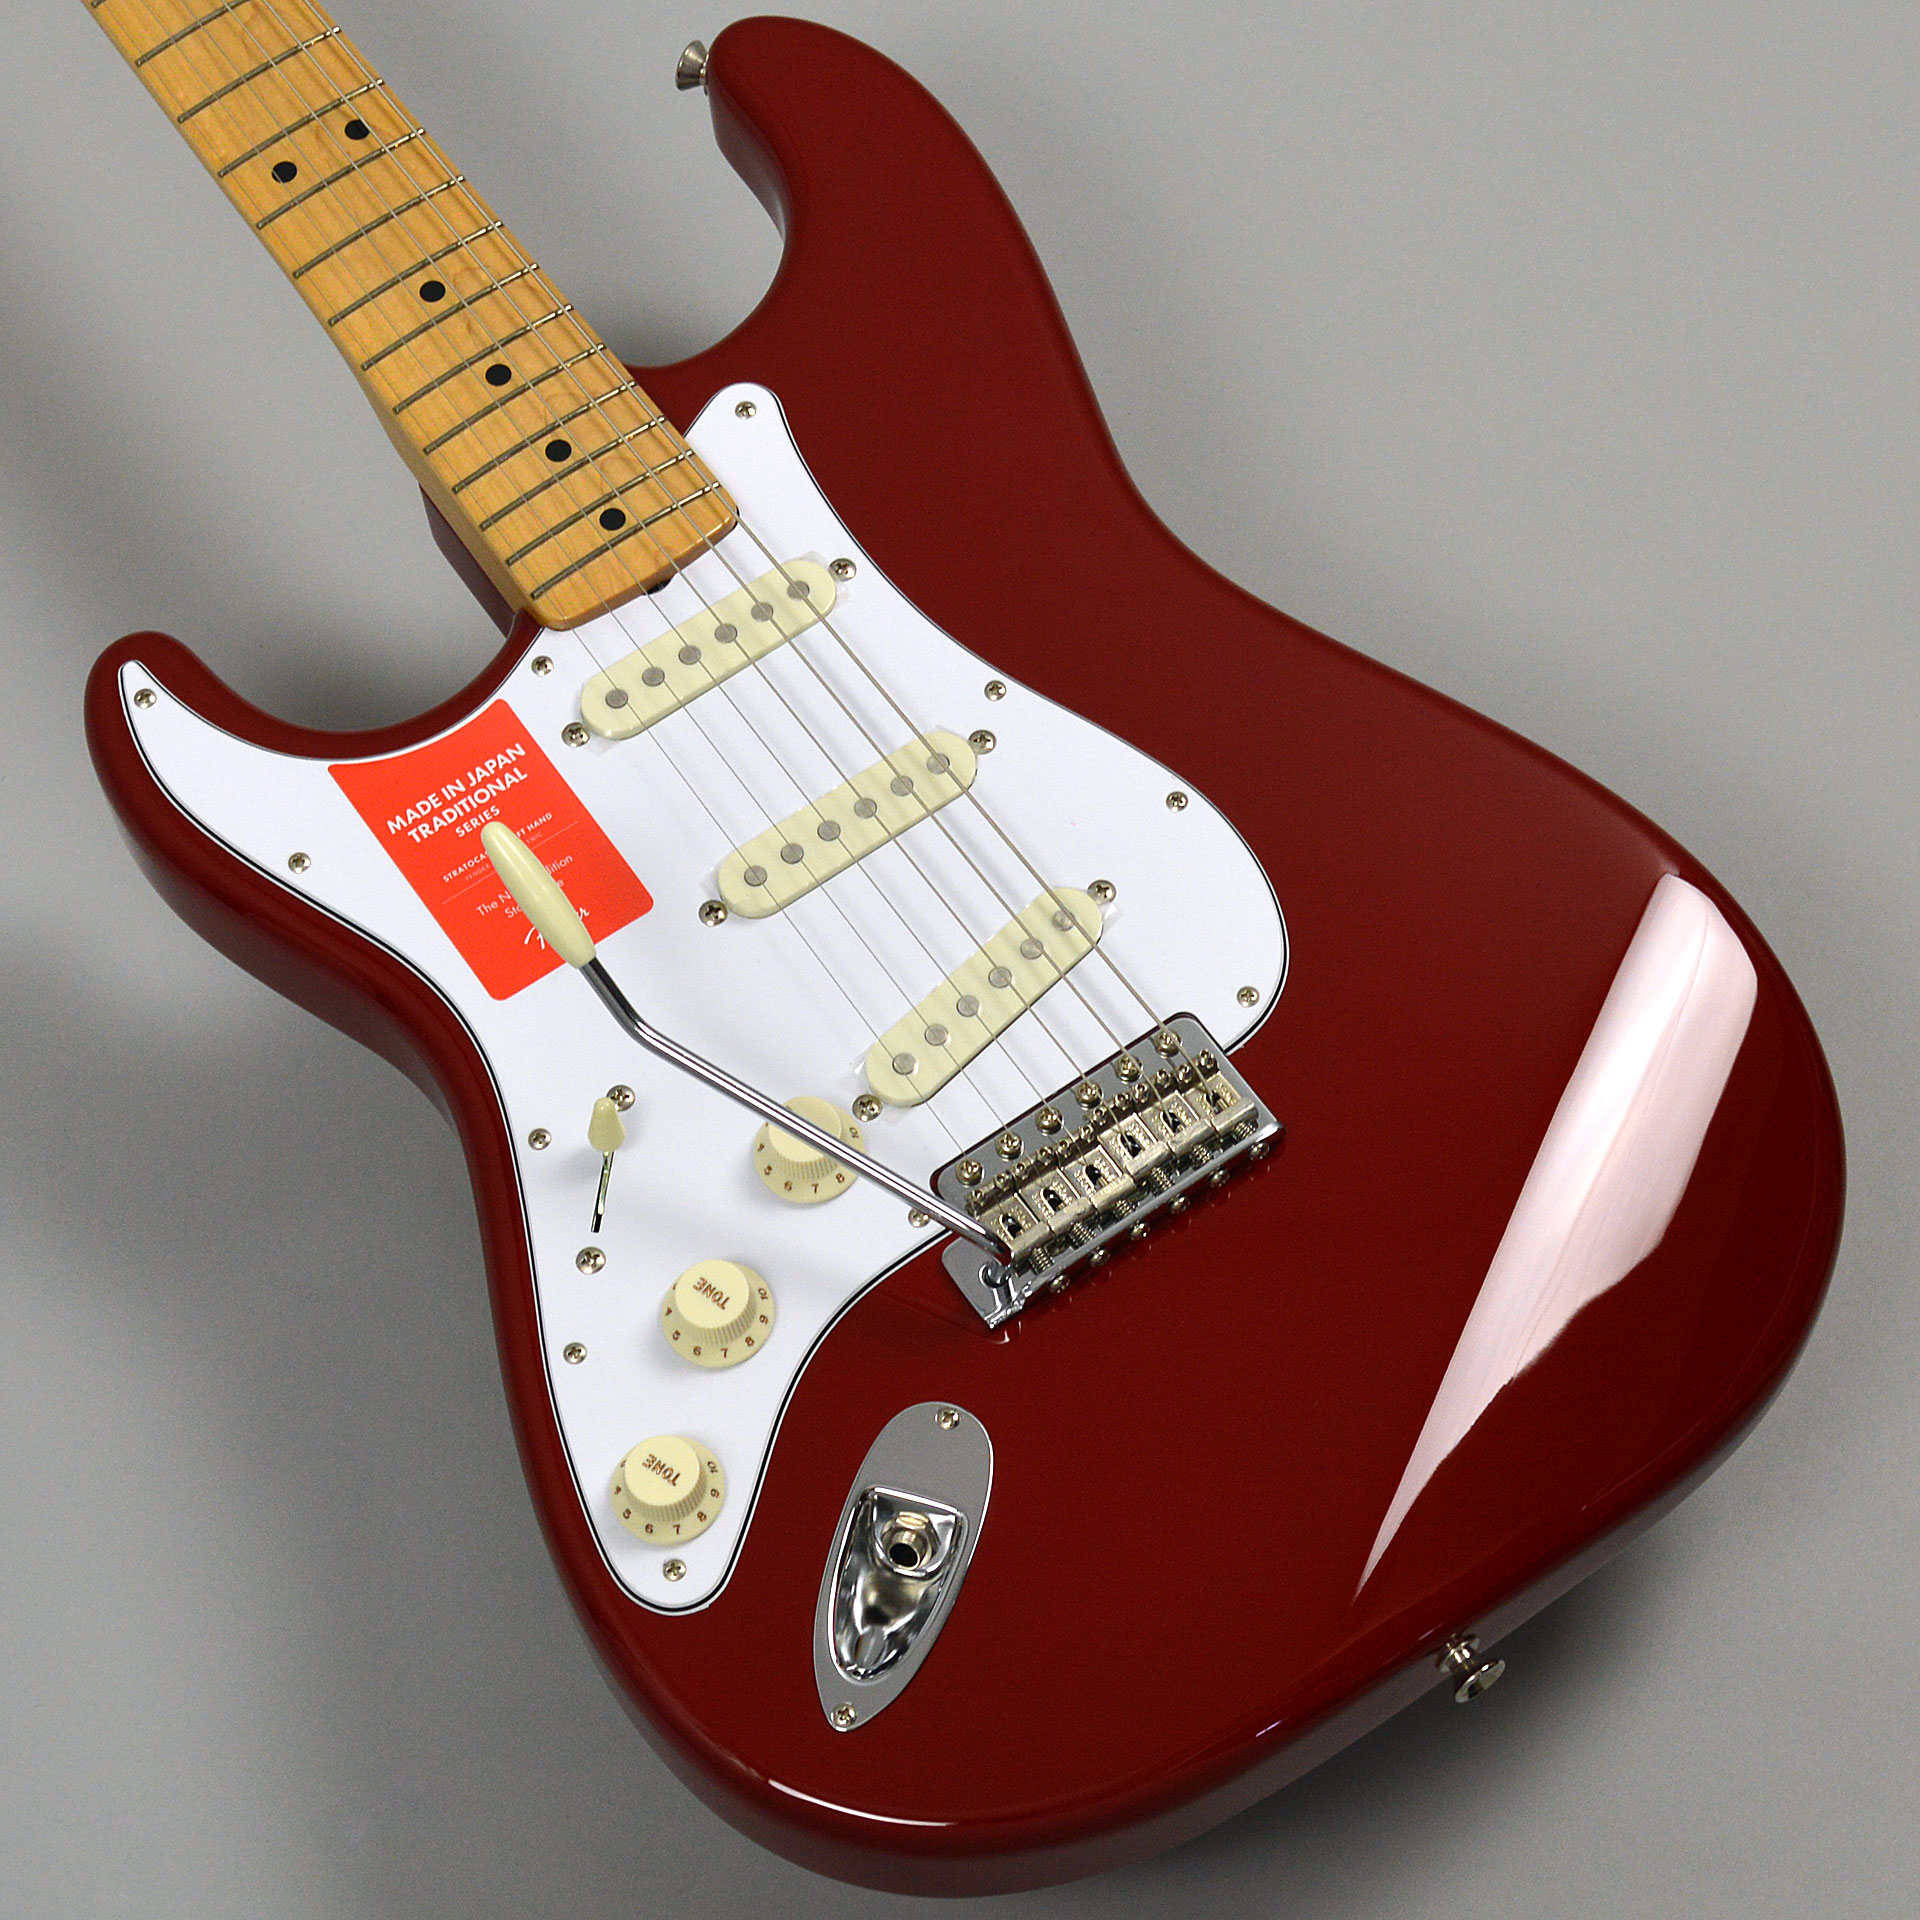 Made in Japan Traditional 68s Stratocaster Left-Handのボディトップ-アップ画像